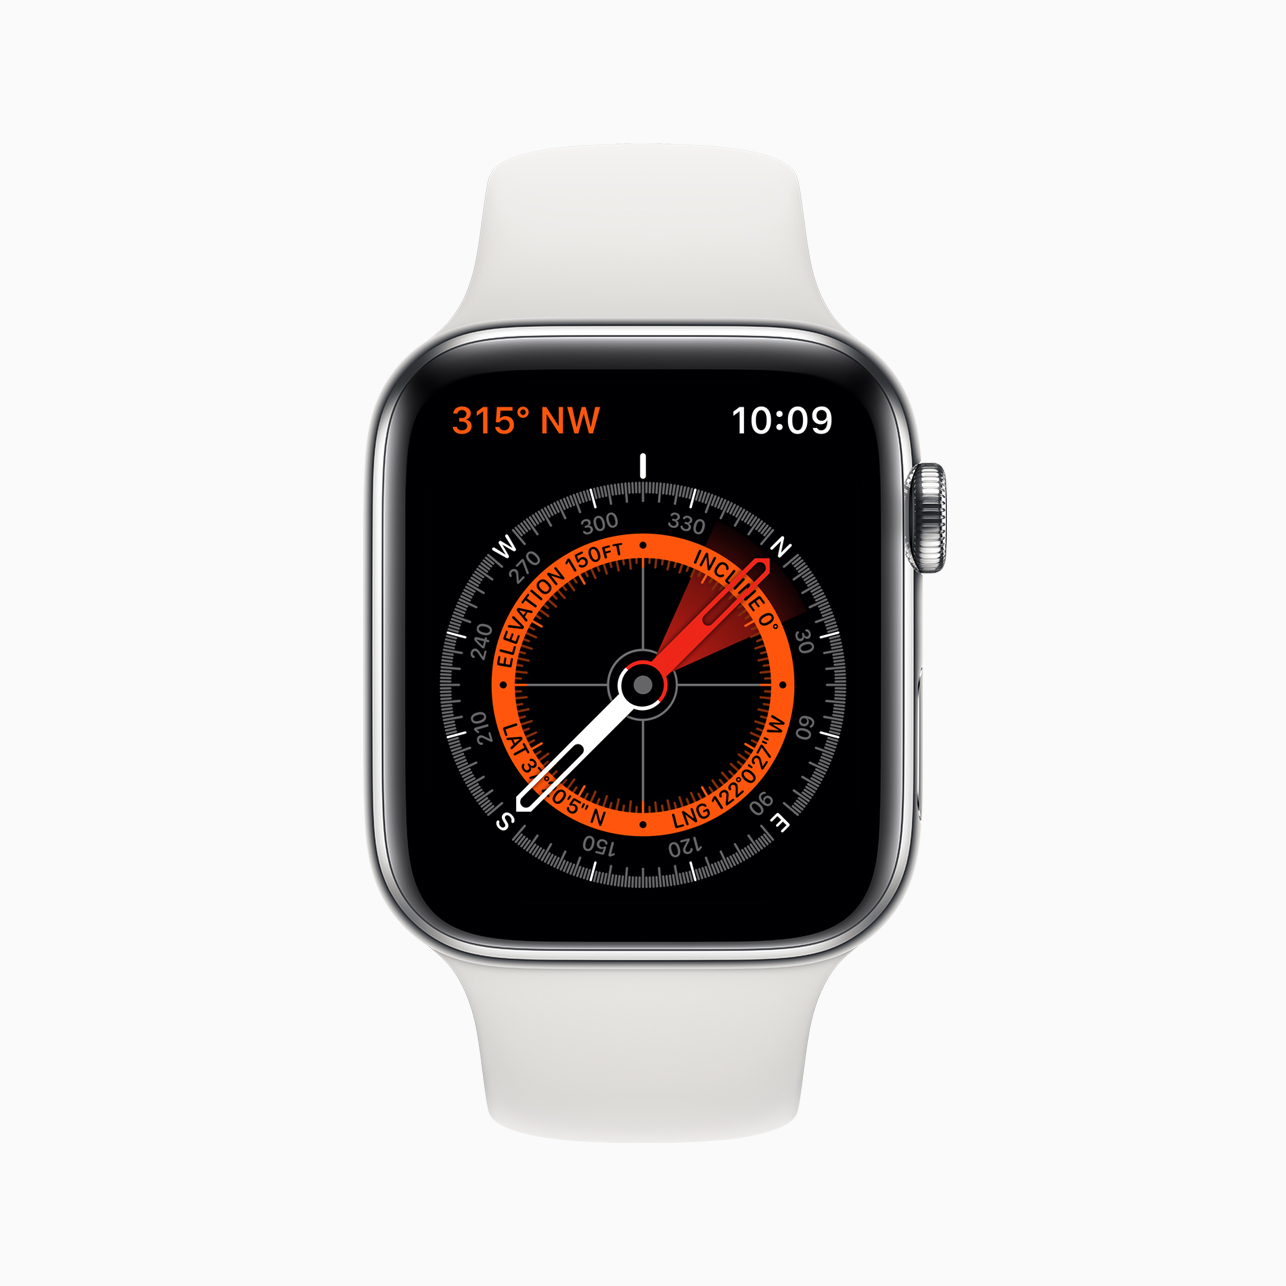 Apple Watch Series 5 處理器